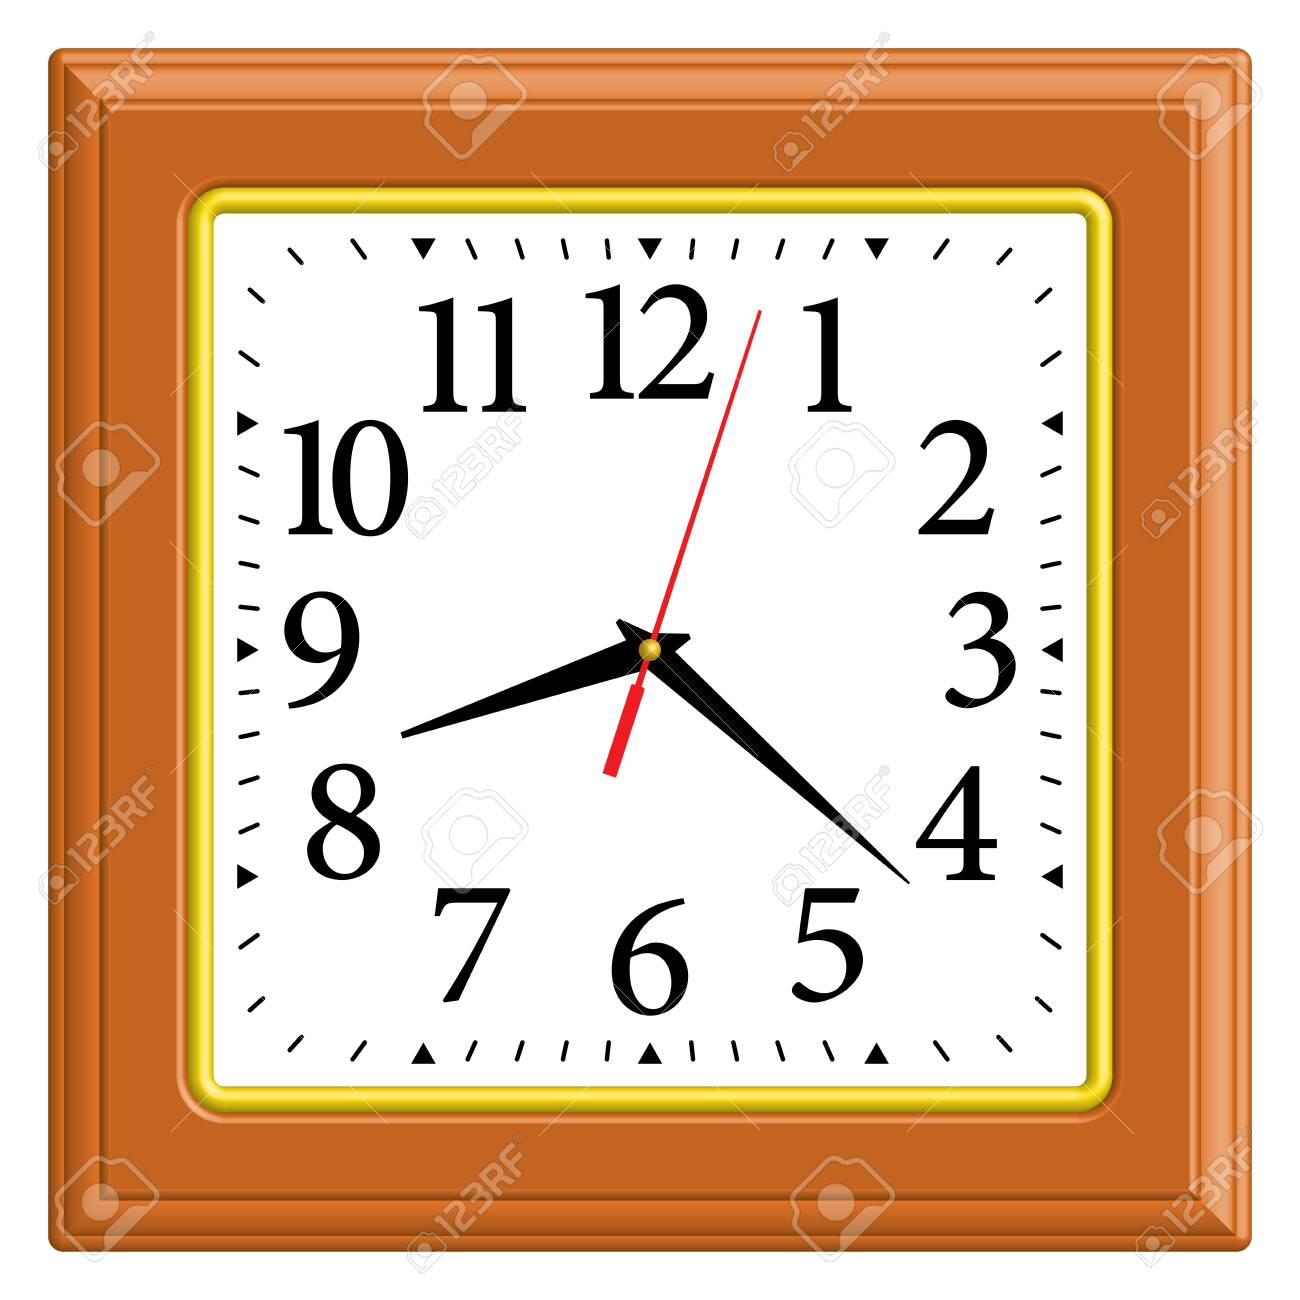 Square Wall Clock Home Decor 3d Effect Vector Illustration Royalty Free Cliparts Vectors And Stock Illustration Image 141508446